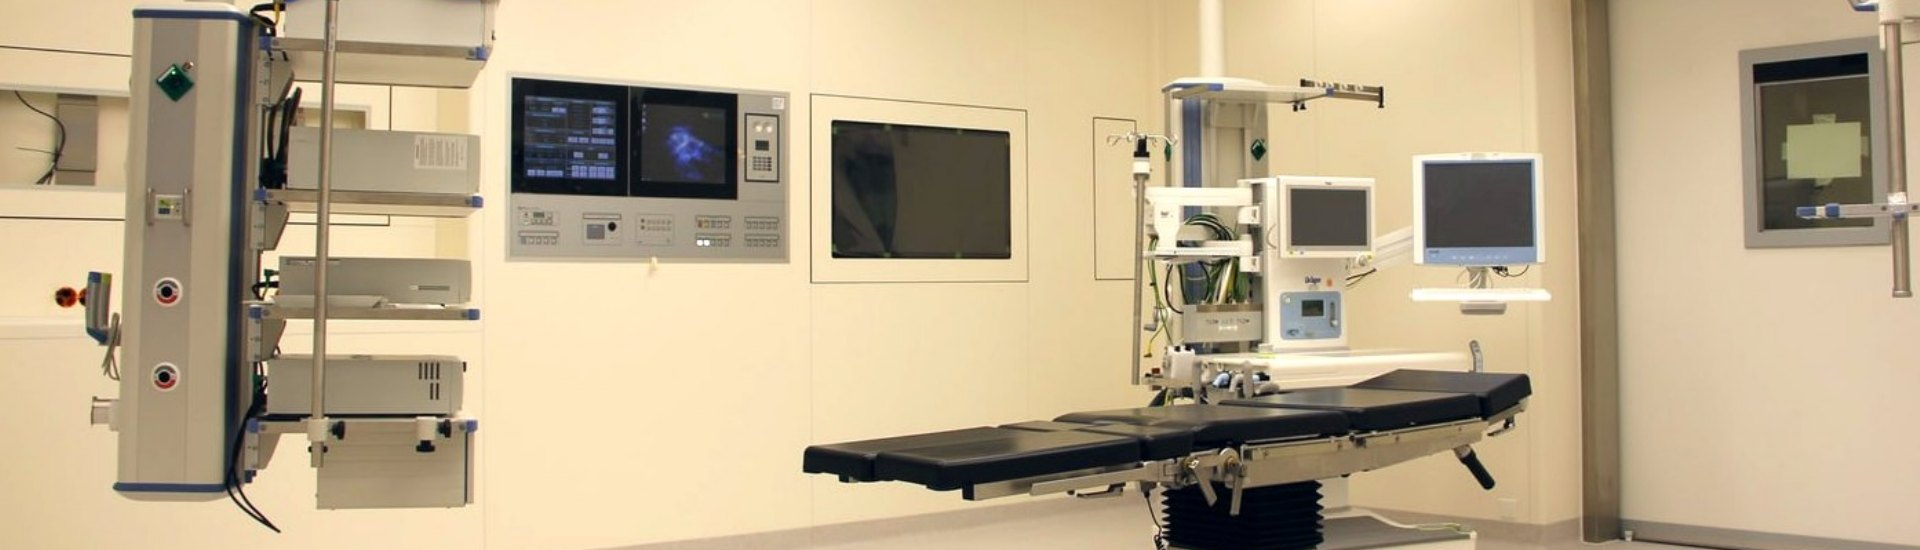 Medical equipment and furniture